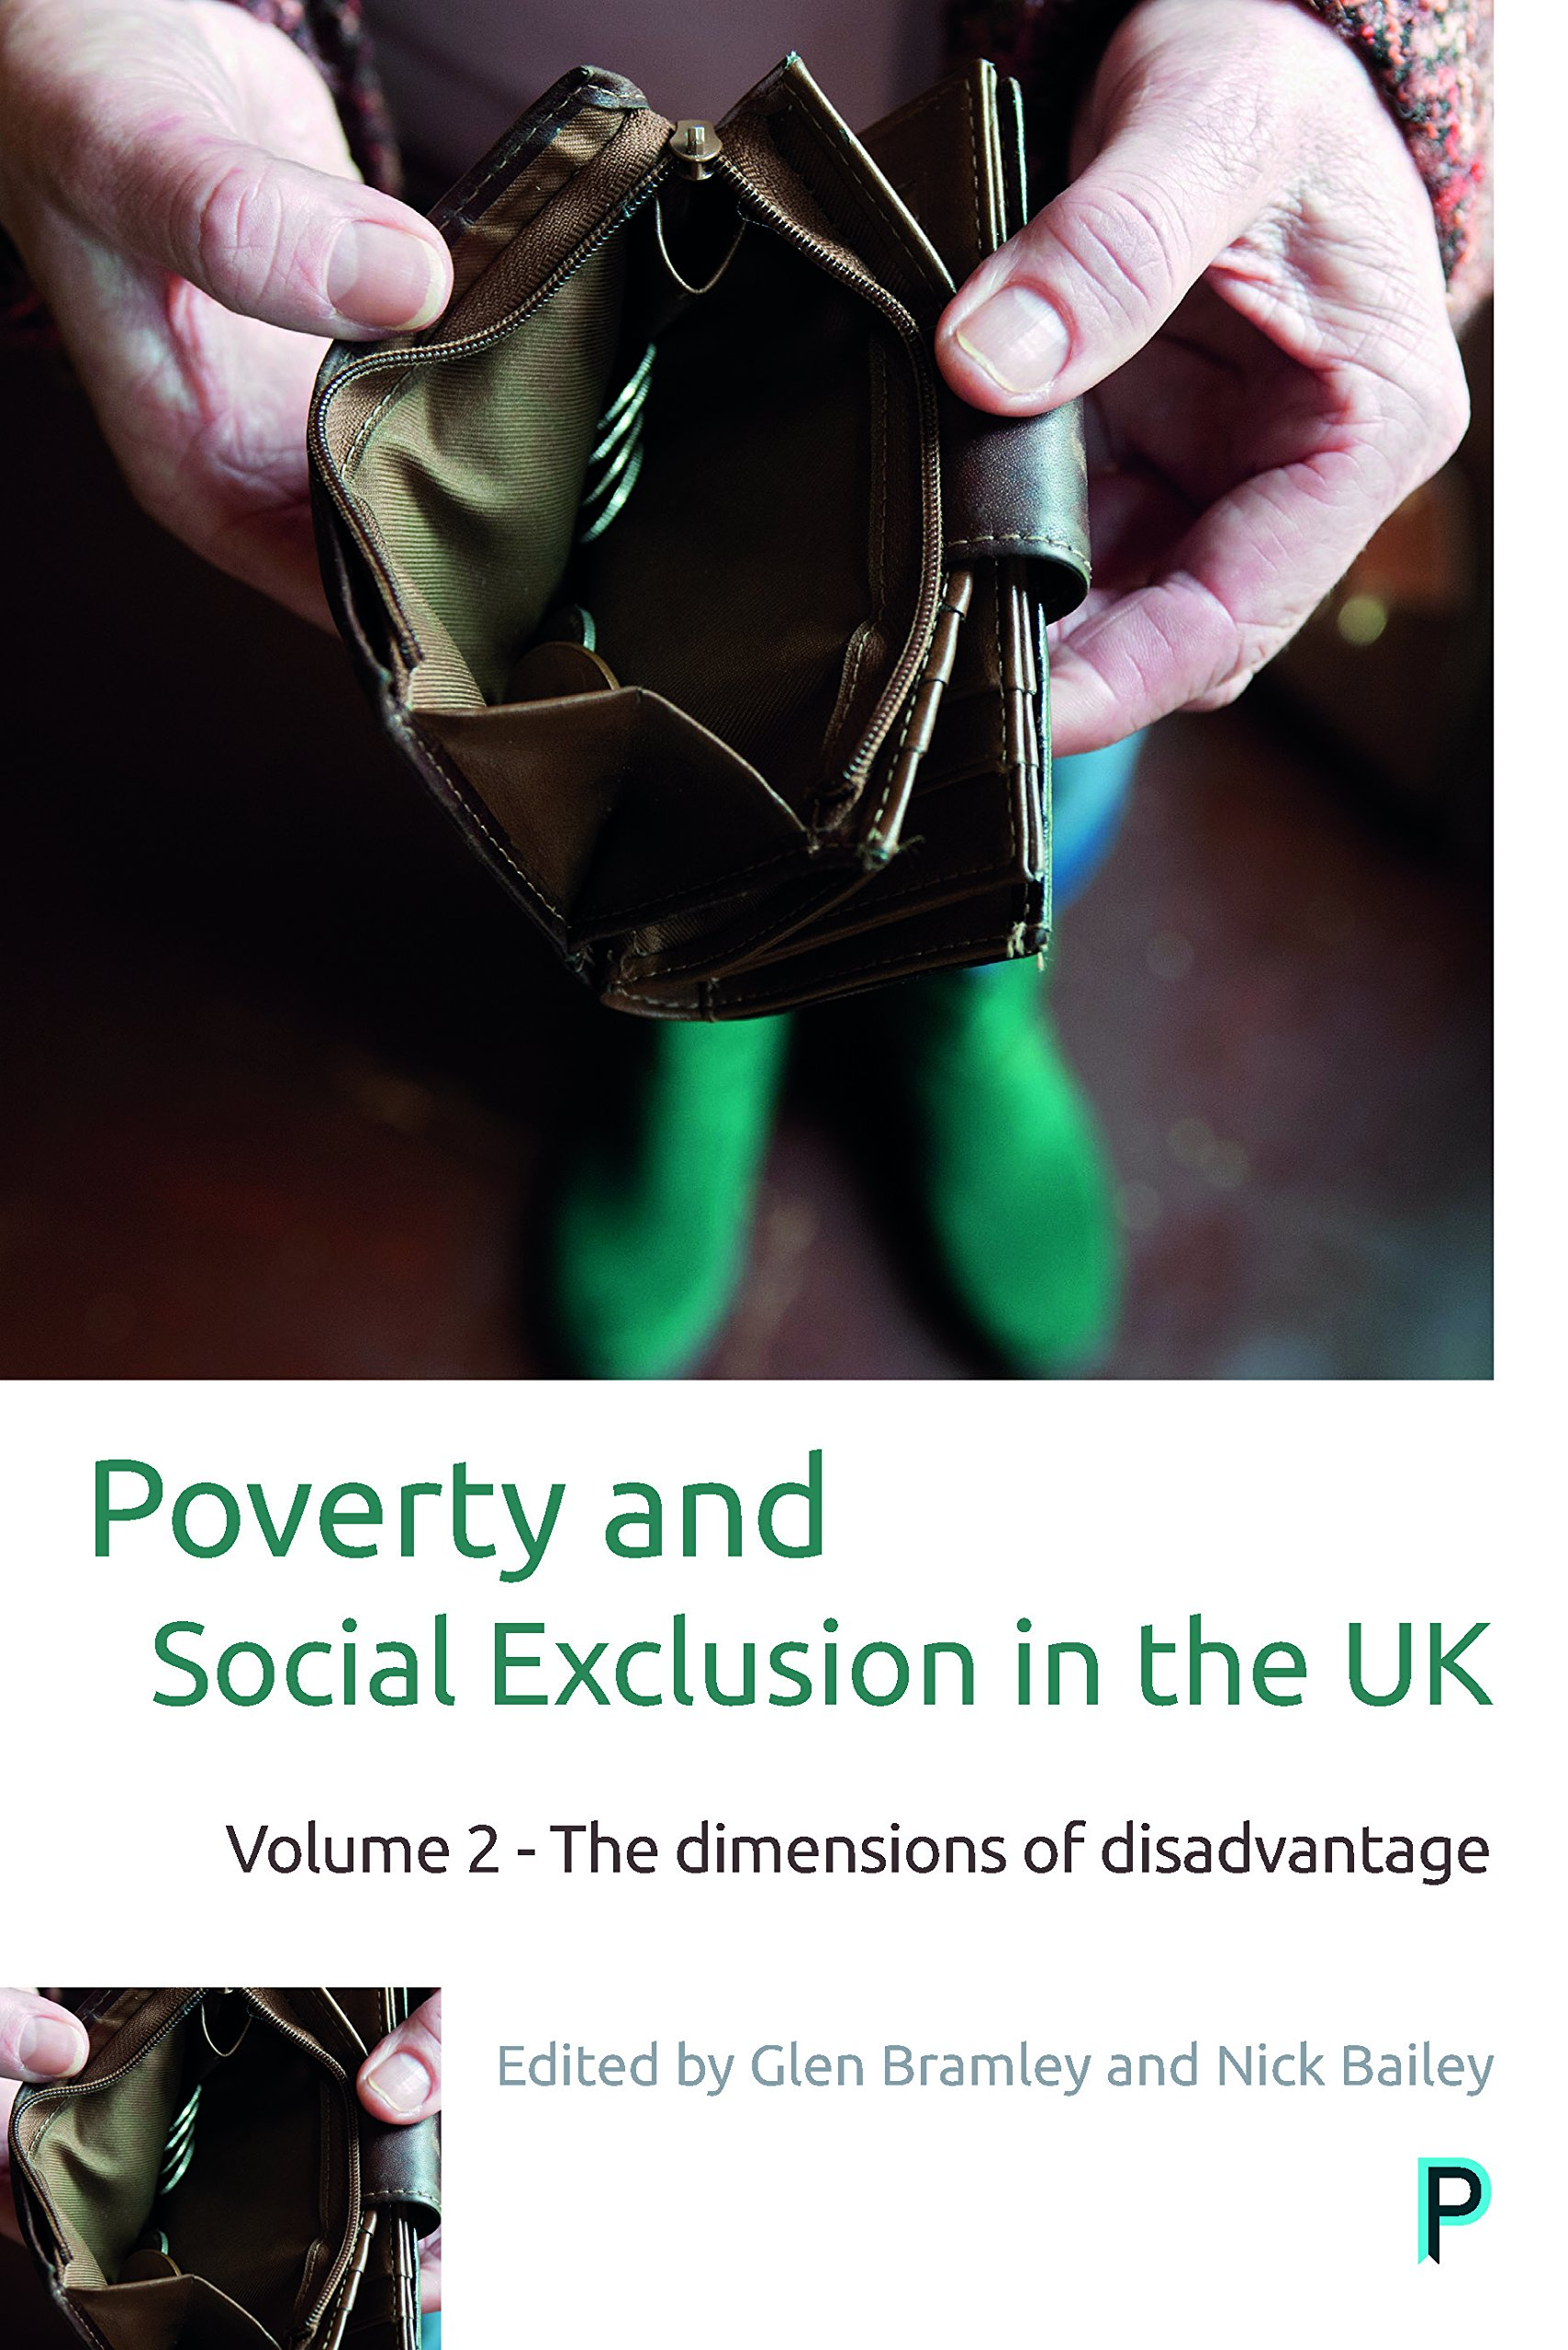 Poverty and Social Exclusion in the UK: Volume 2 - The Dimensions of Disadvantage pdf